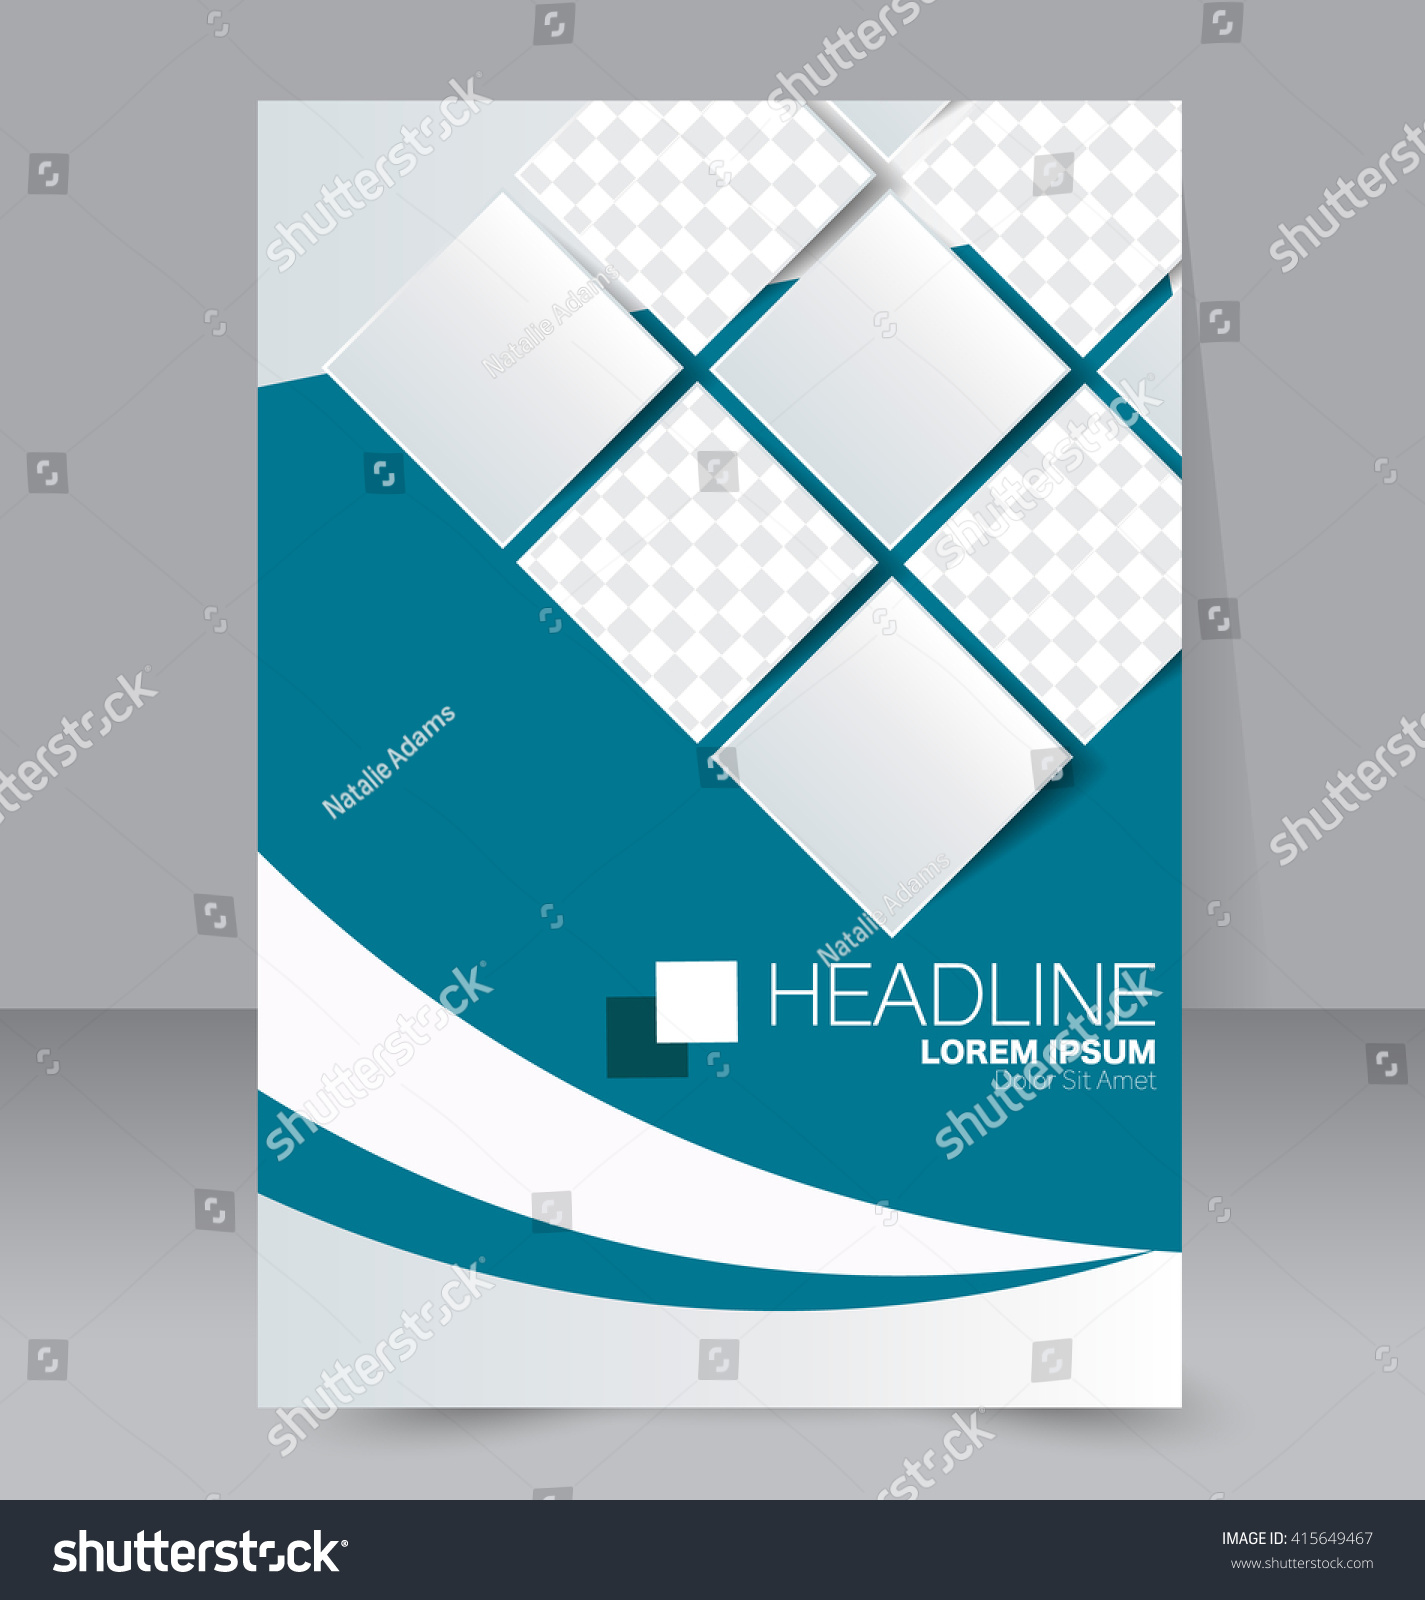 Abstract flyer design background brochure template stock for Background brochure templates